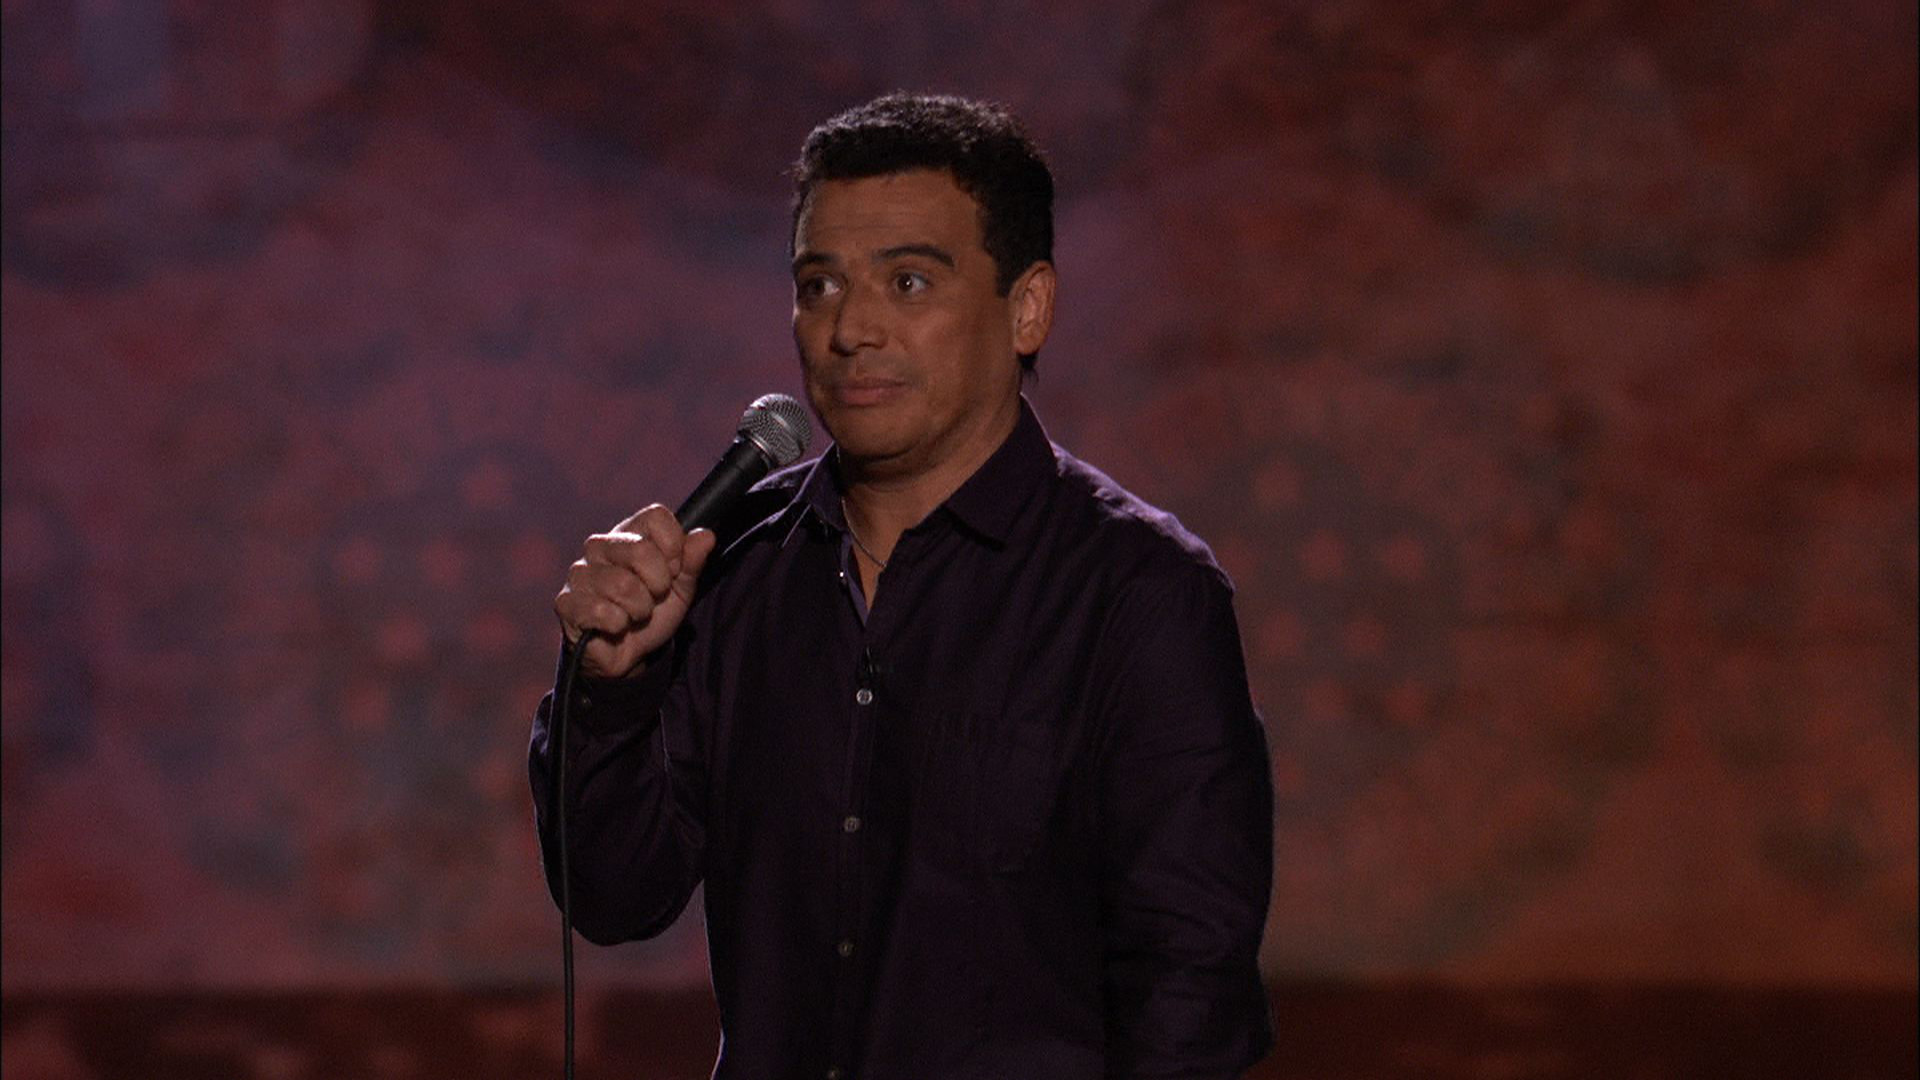 Carlos Mencia - Sensitive Economy